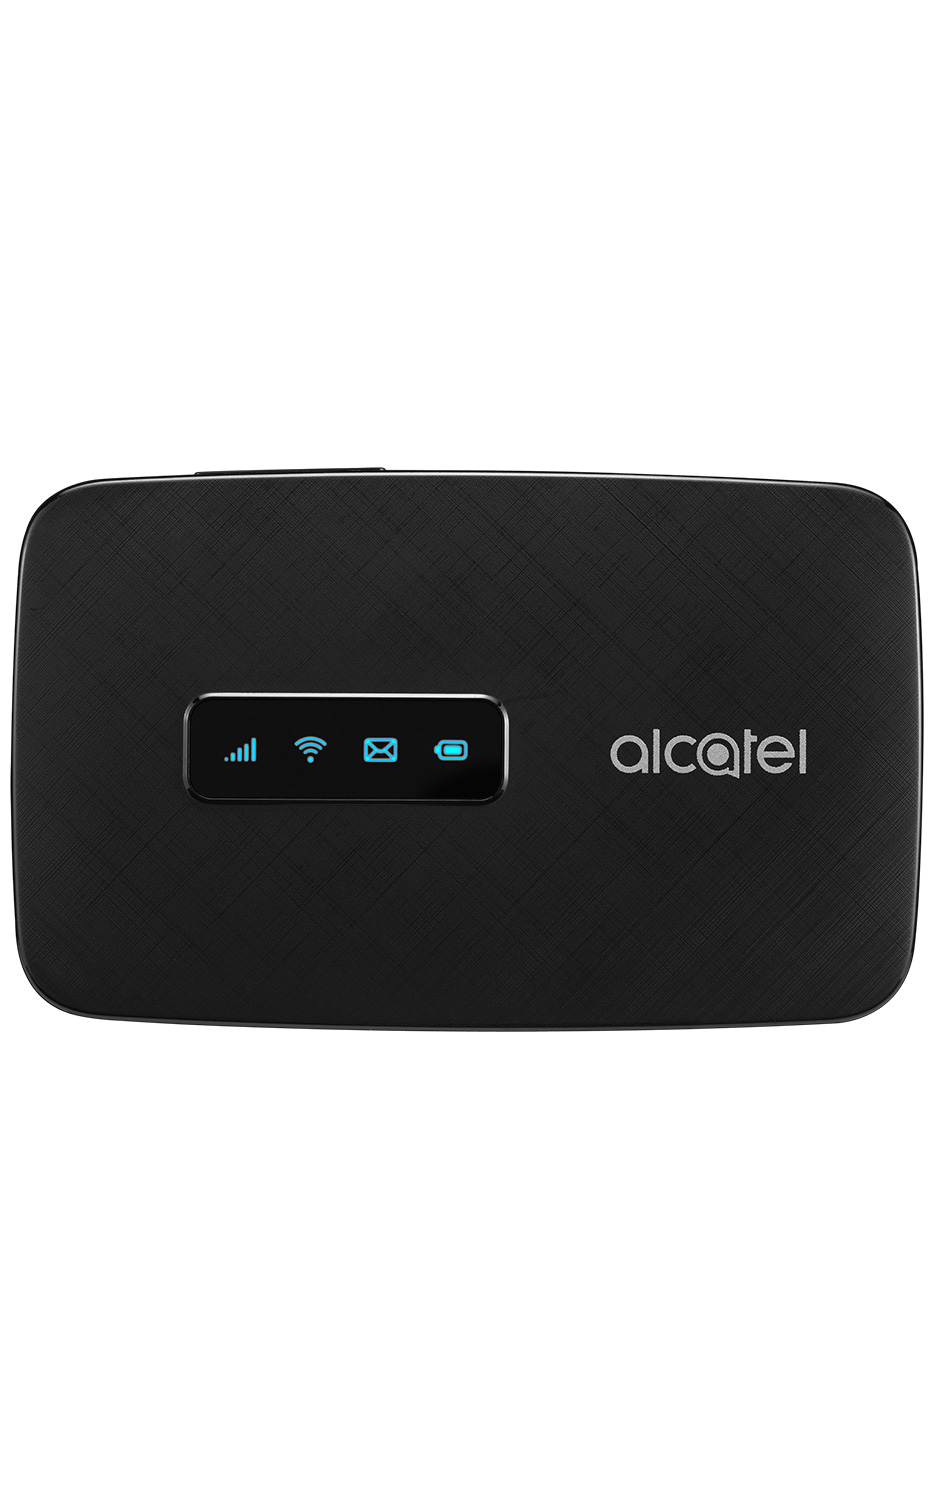 alcatel link zone read reviews tech specs more t mobile rh t mobile com T-Mobile 4G LTE Hotspot T-Mobile 4G LTE Hotspot